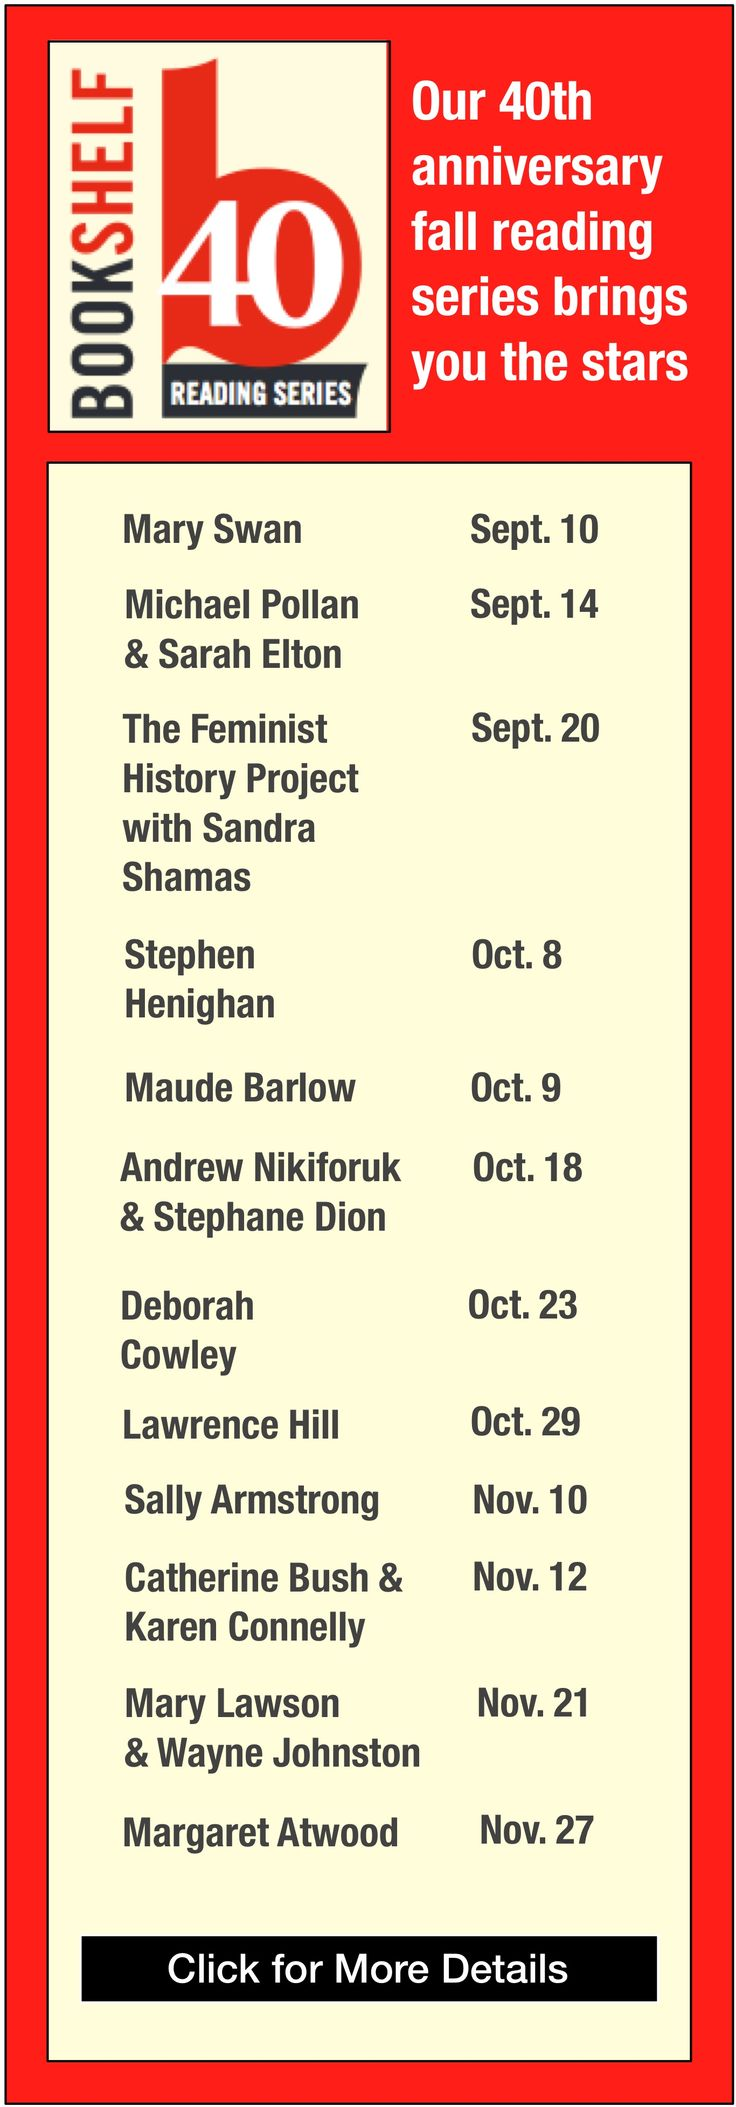 The Bookshelf launch of A Green Reef, Tuesday Oct. 8th, Guelph ON